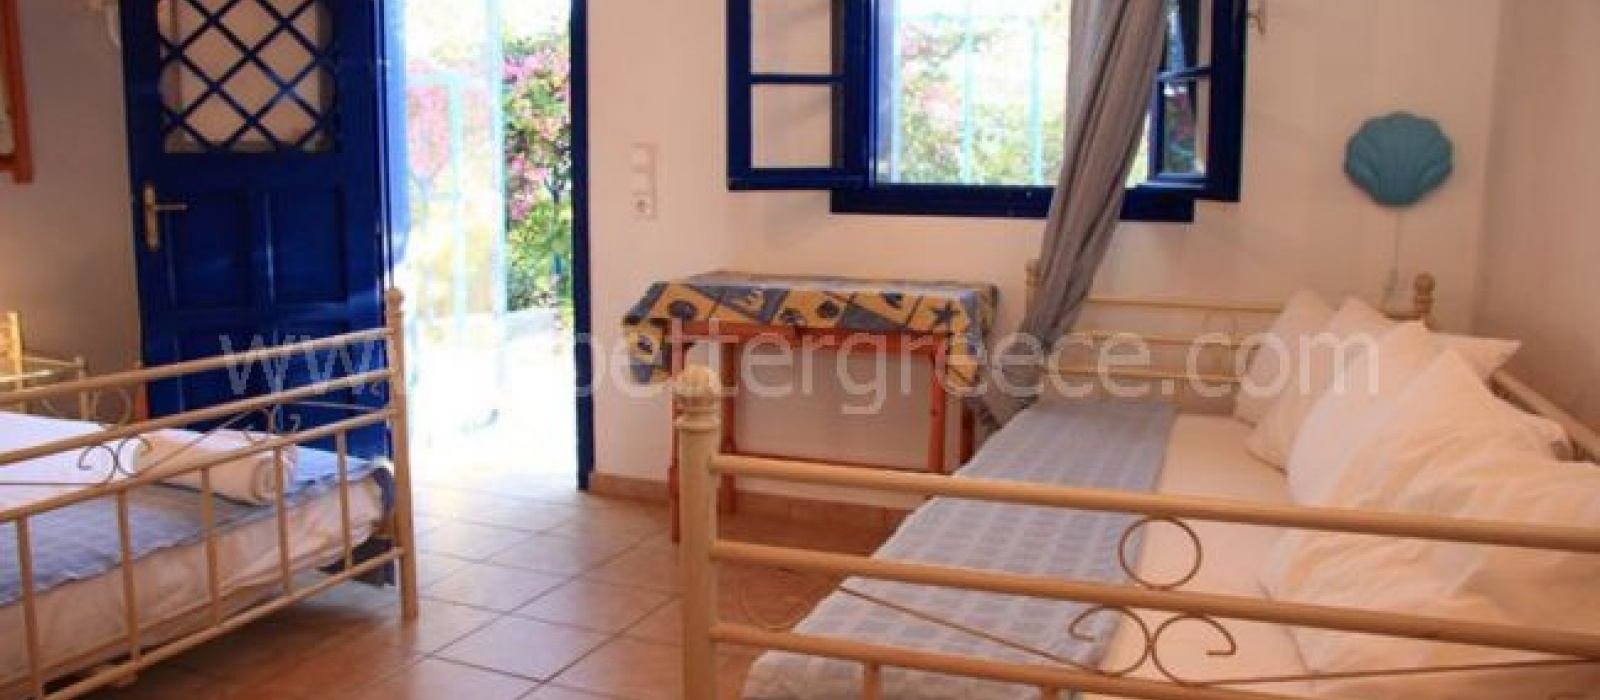 1 Bedrooms, Apartment, Vacation Rental, 1 Bathrooms, Listing ID 1170, Iraklia, Greece,